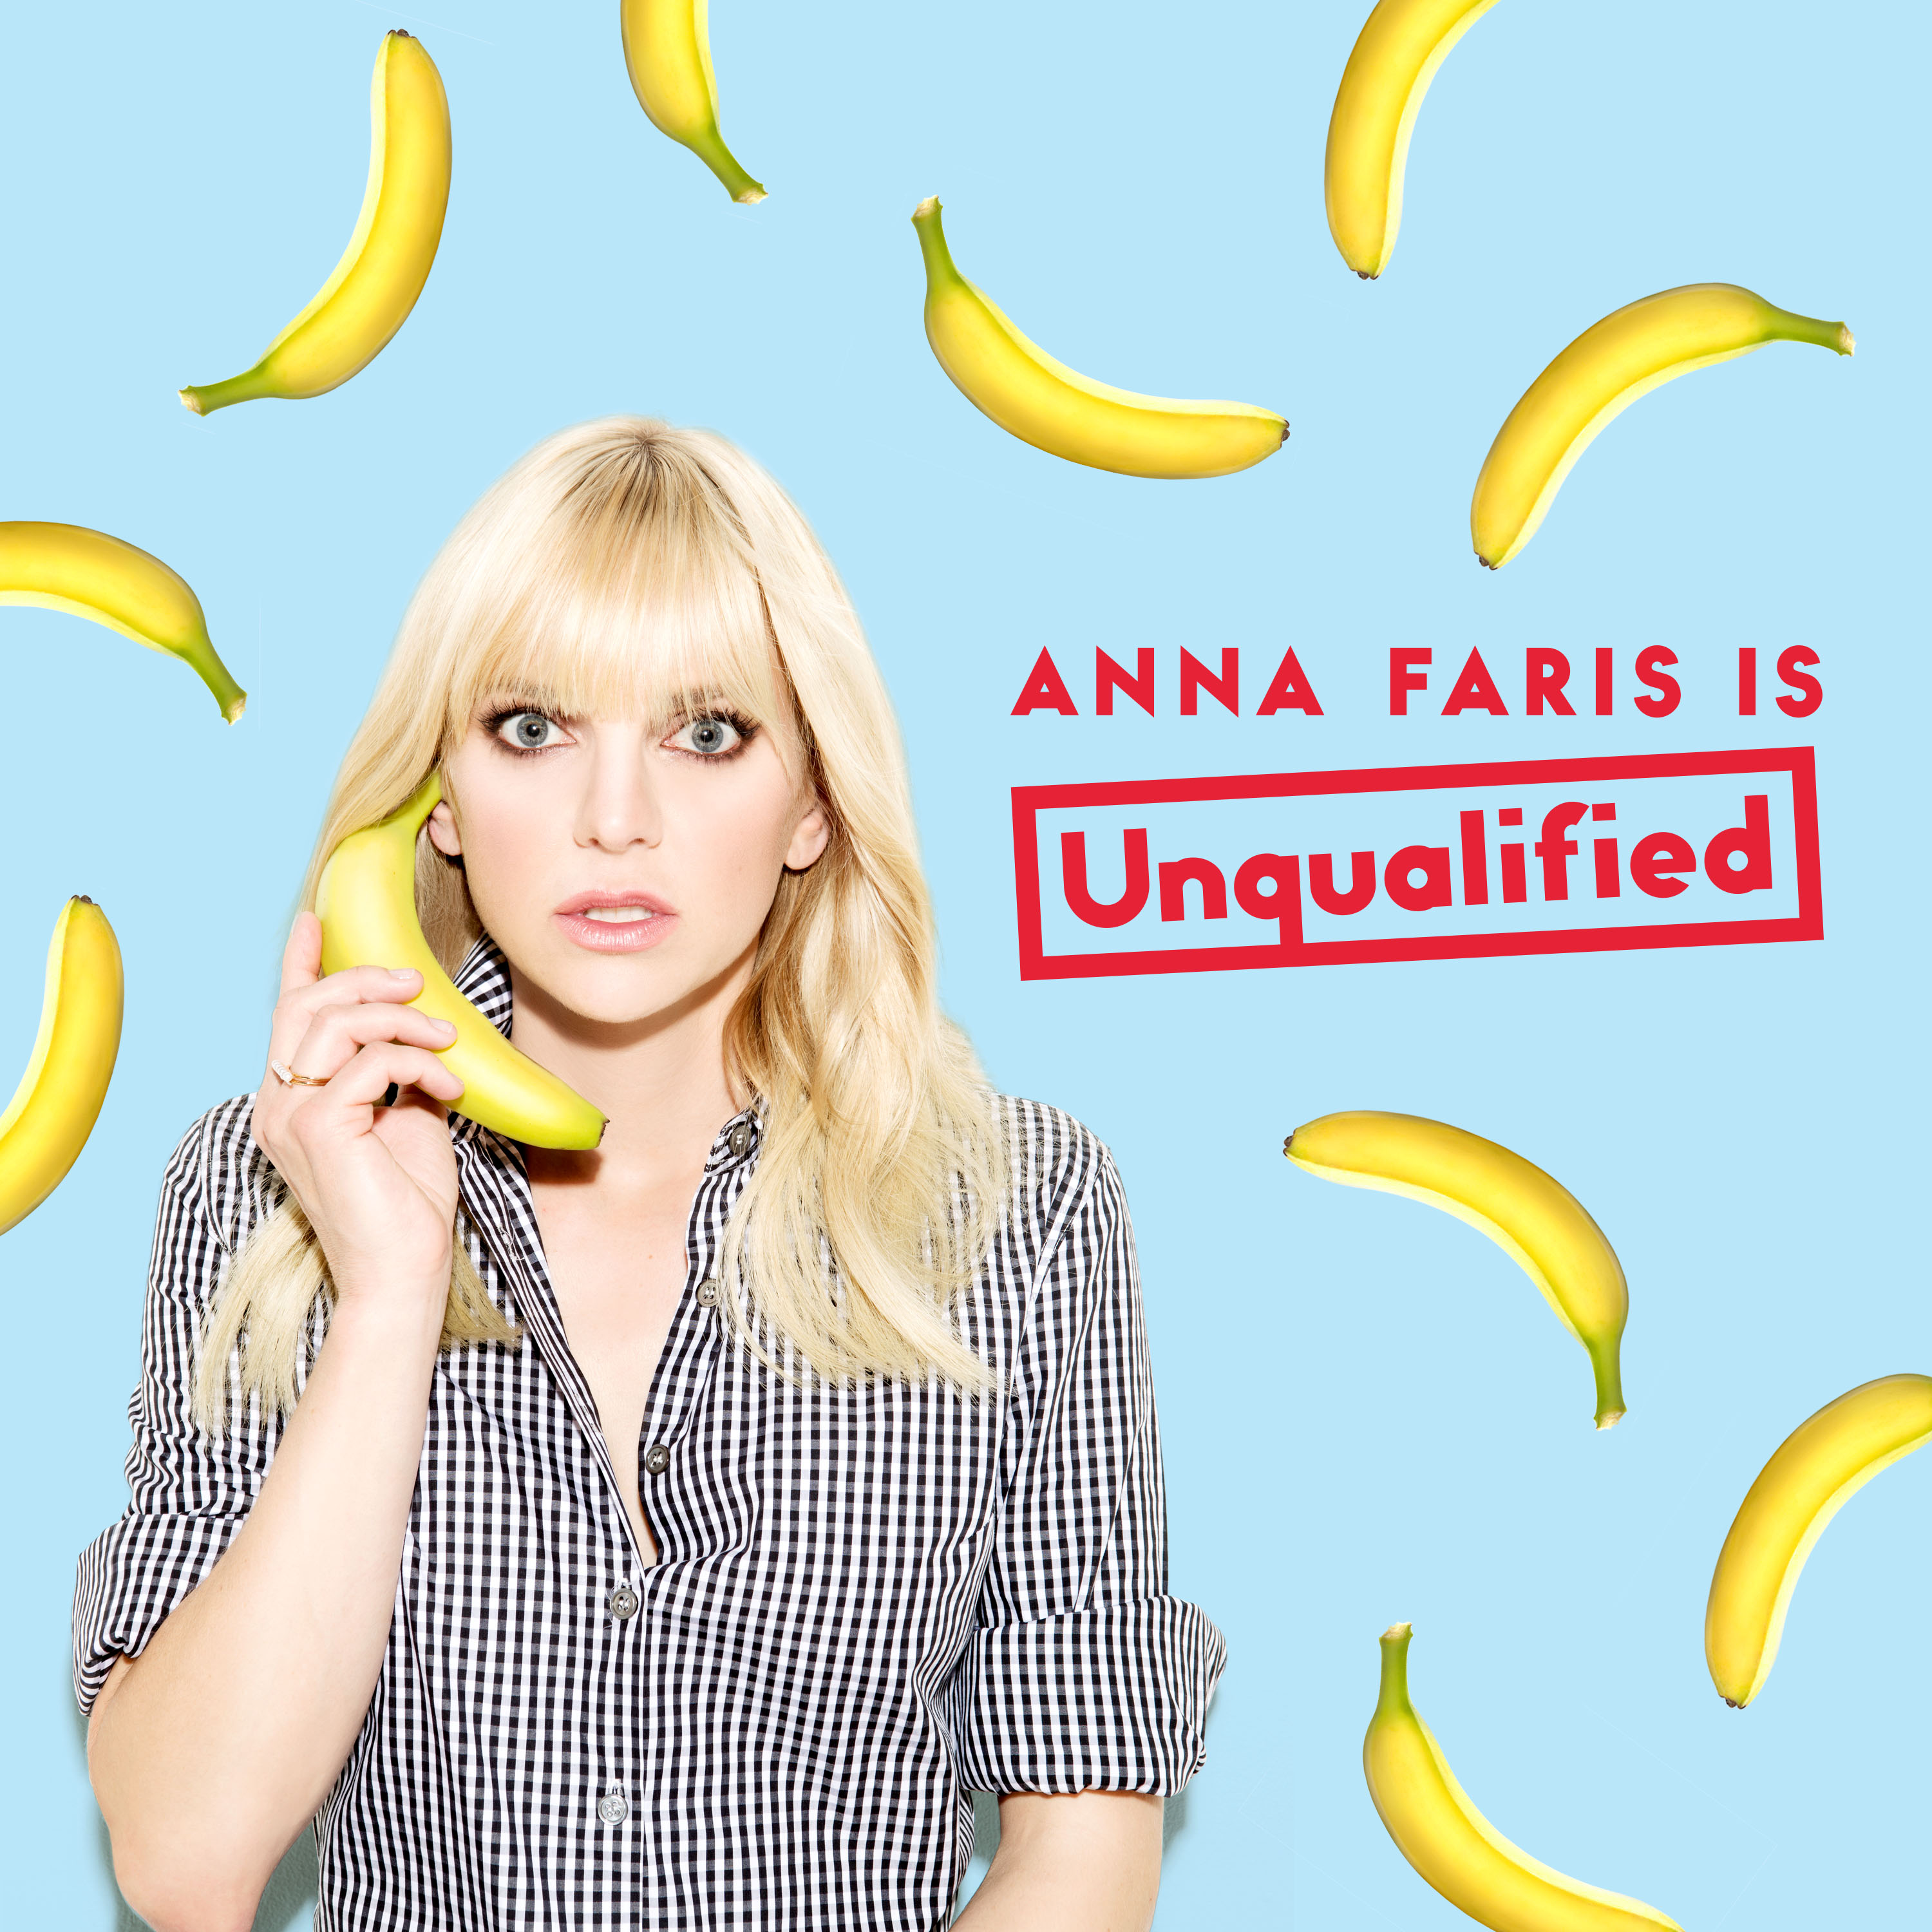 Anna Faris Is Unqualified logo